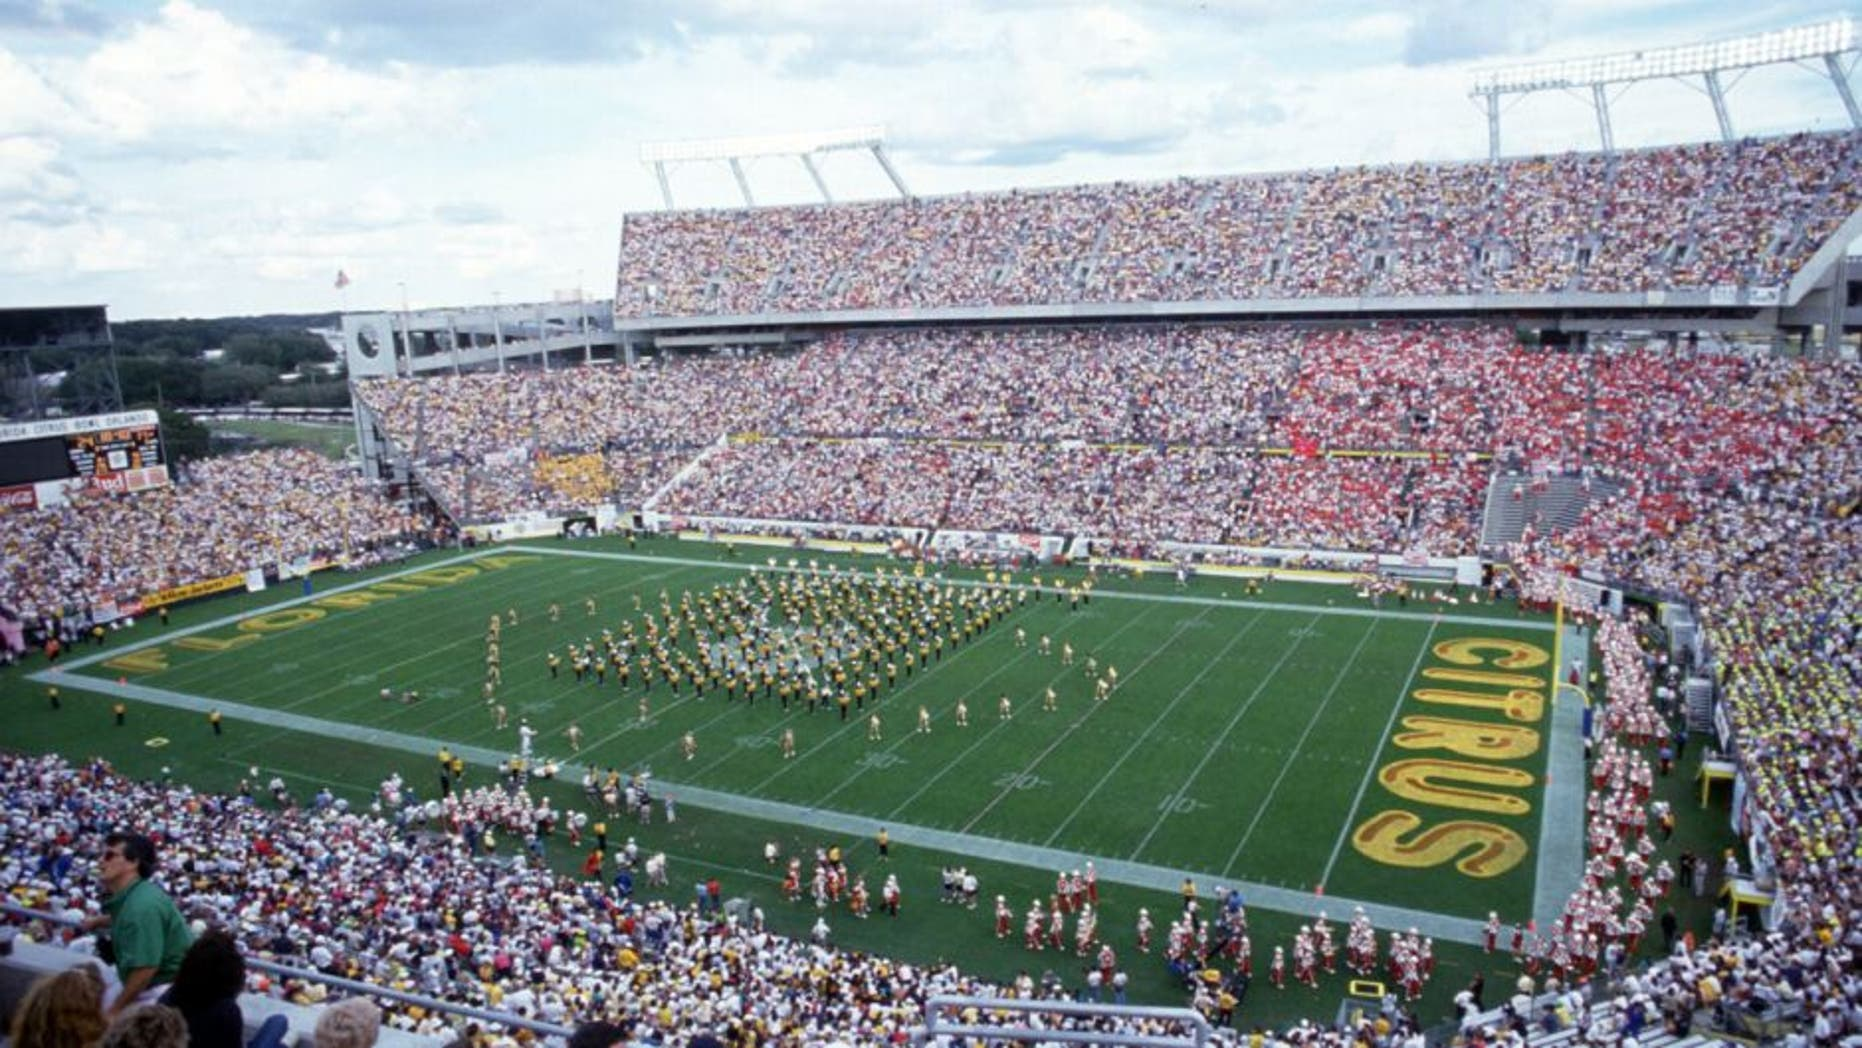 1 JAN 1991: A GENERAL VIEW OF THE CITRUS BOWL DURING THE GEORGIA TECH YELLOW JACKETS 45-21 VICTORY OVER THE NEBRASKA CORNHUSKERS IN THE 1991 FLORIDA CITRUS BOWL IN ORLANDO, FLORIDA. Mandatory Credit: Scott Halleran/ALLSPORT